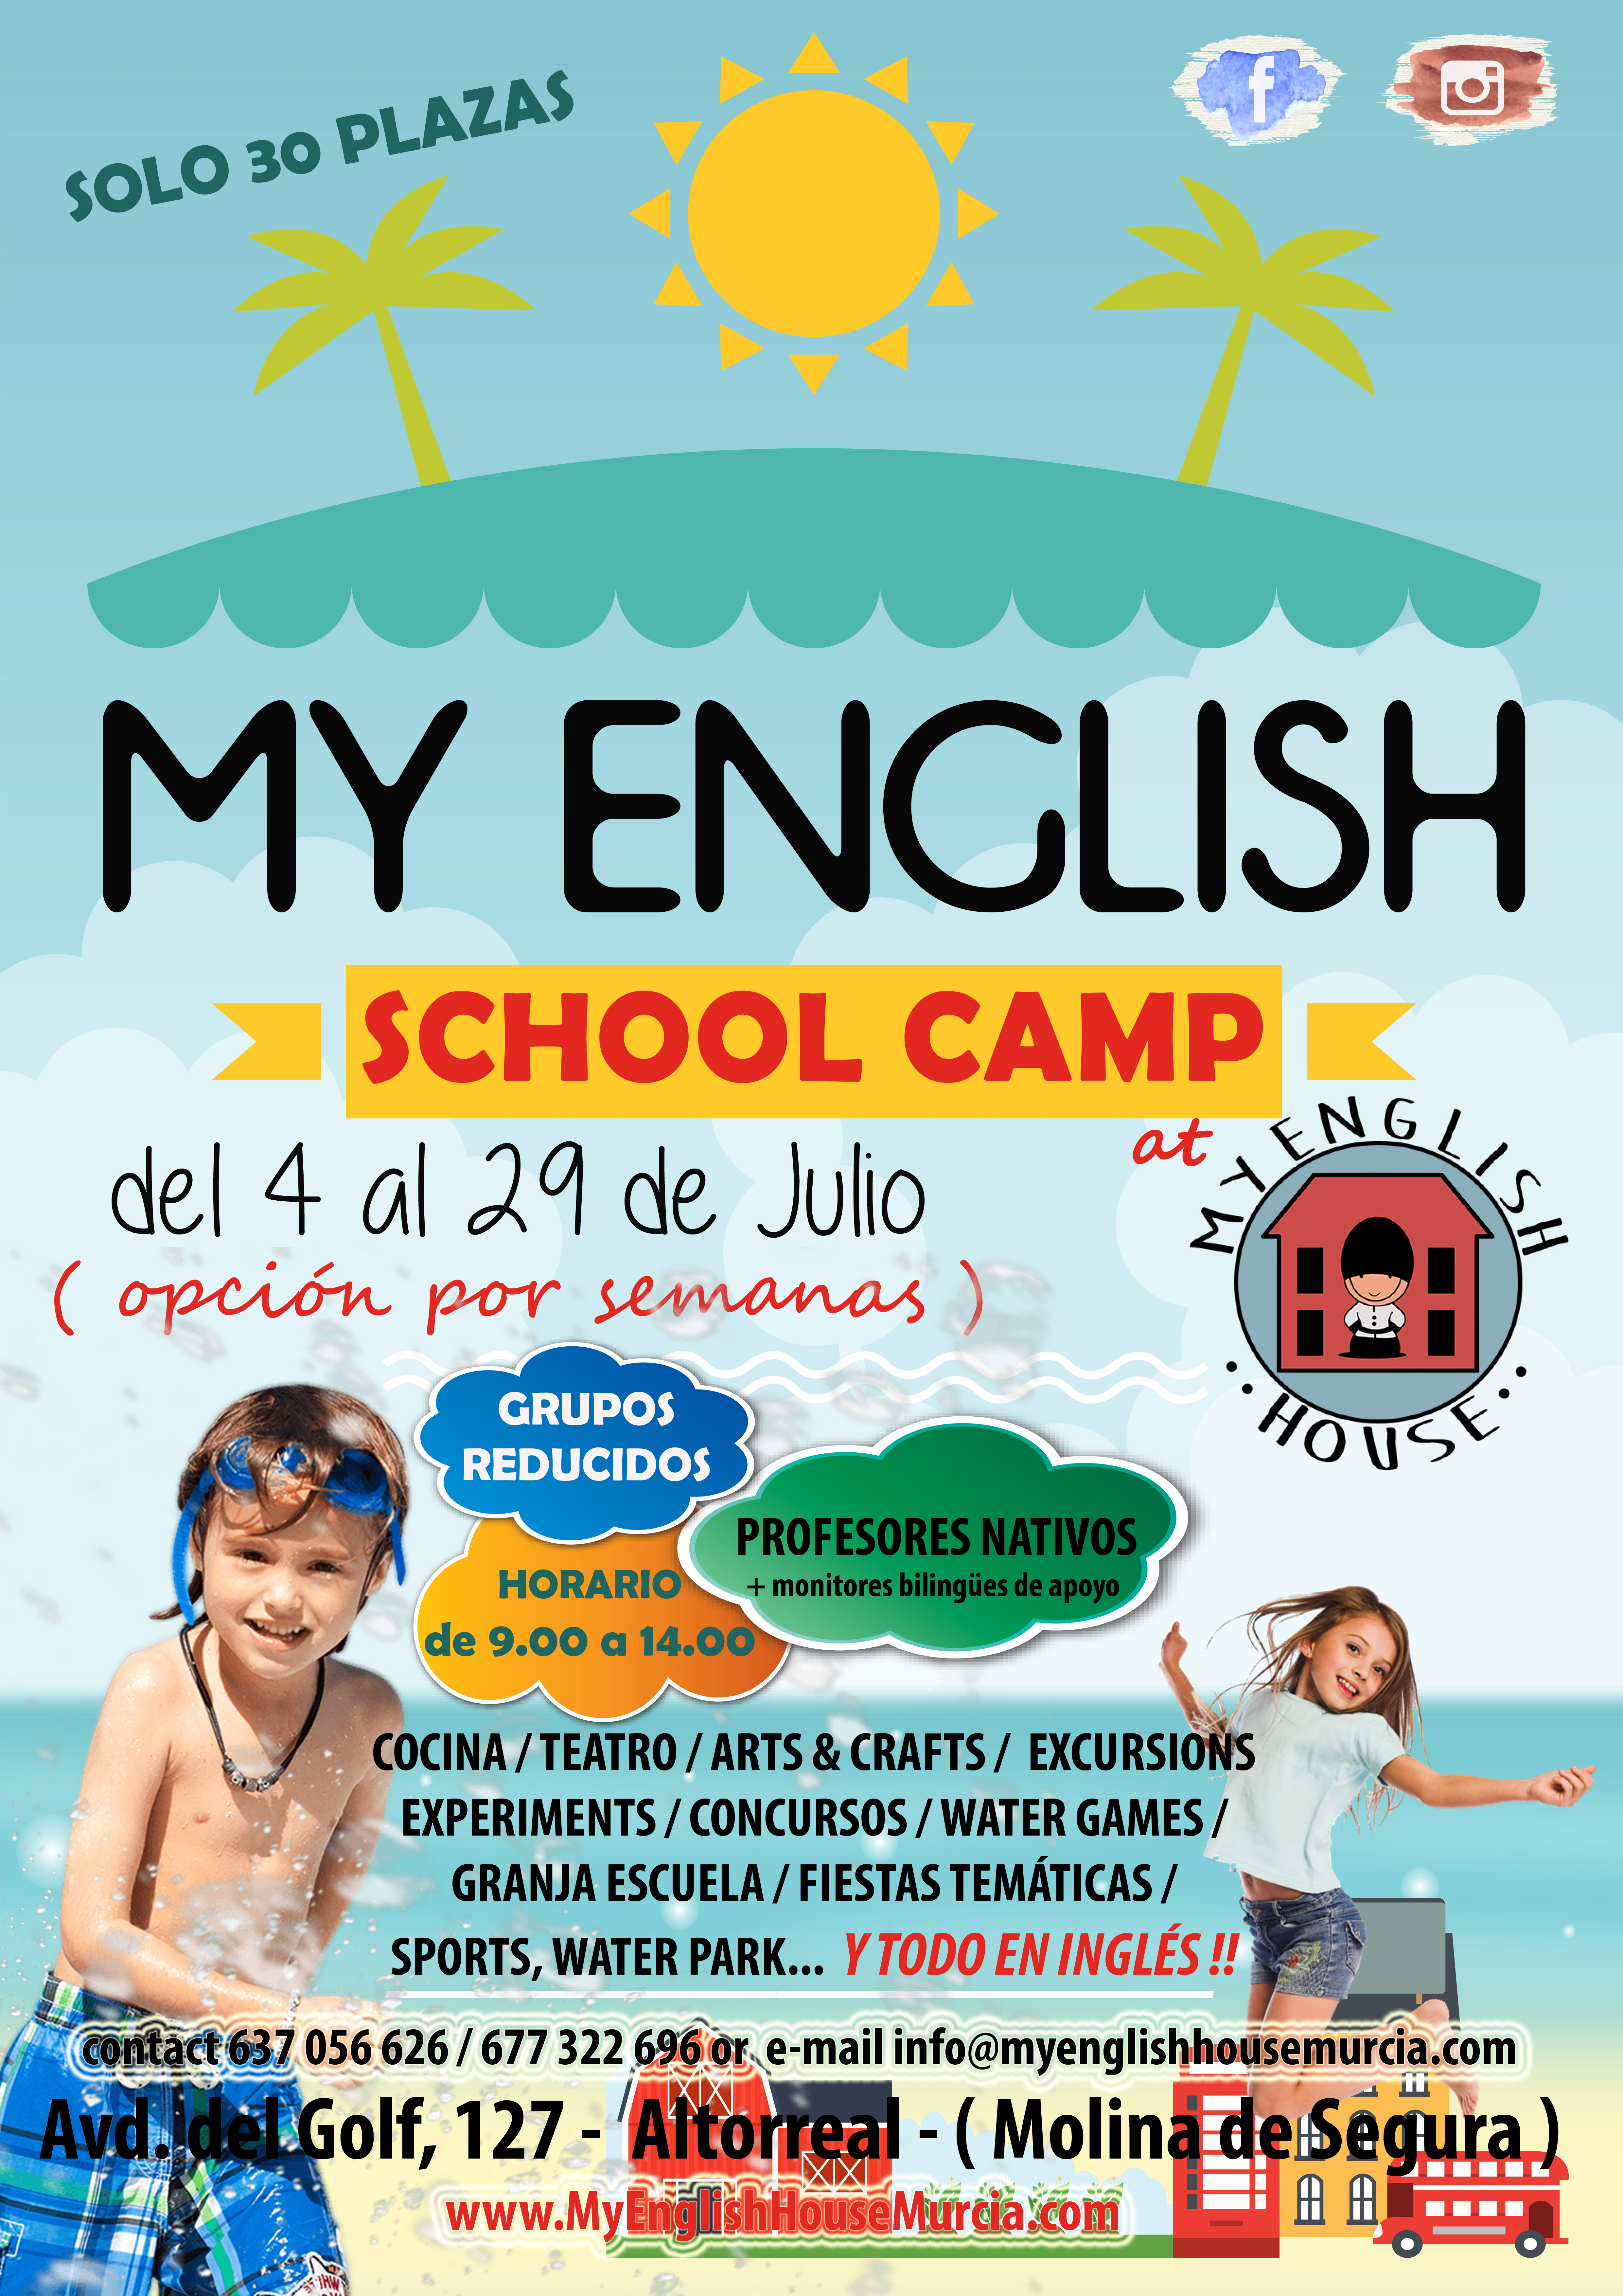 MY ENGLISH SCHOOL CAMP